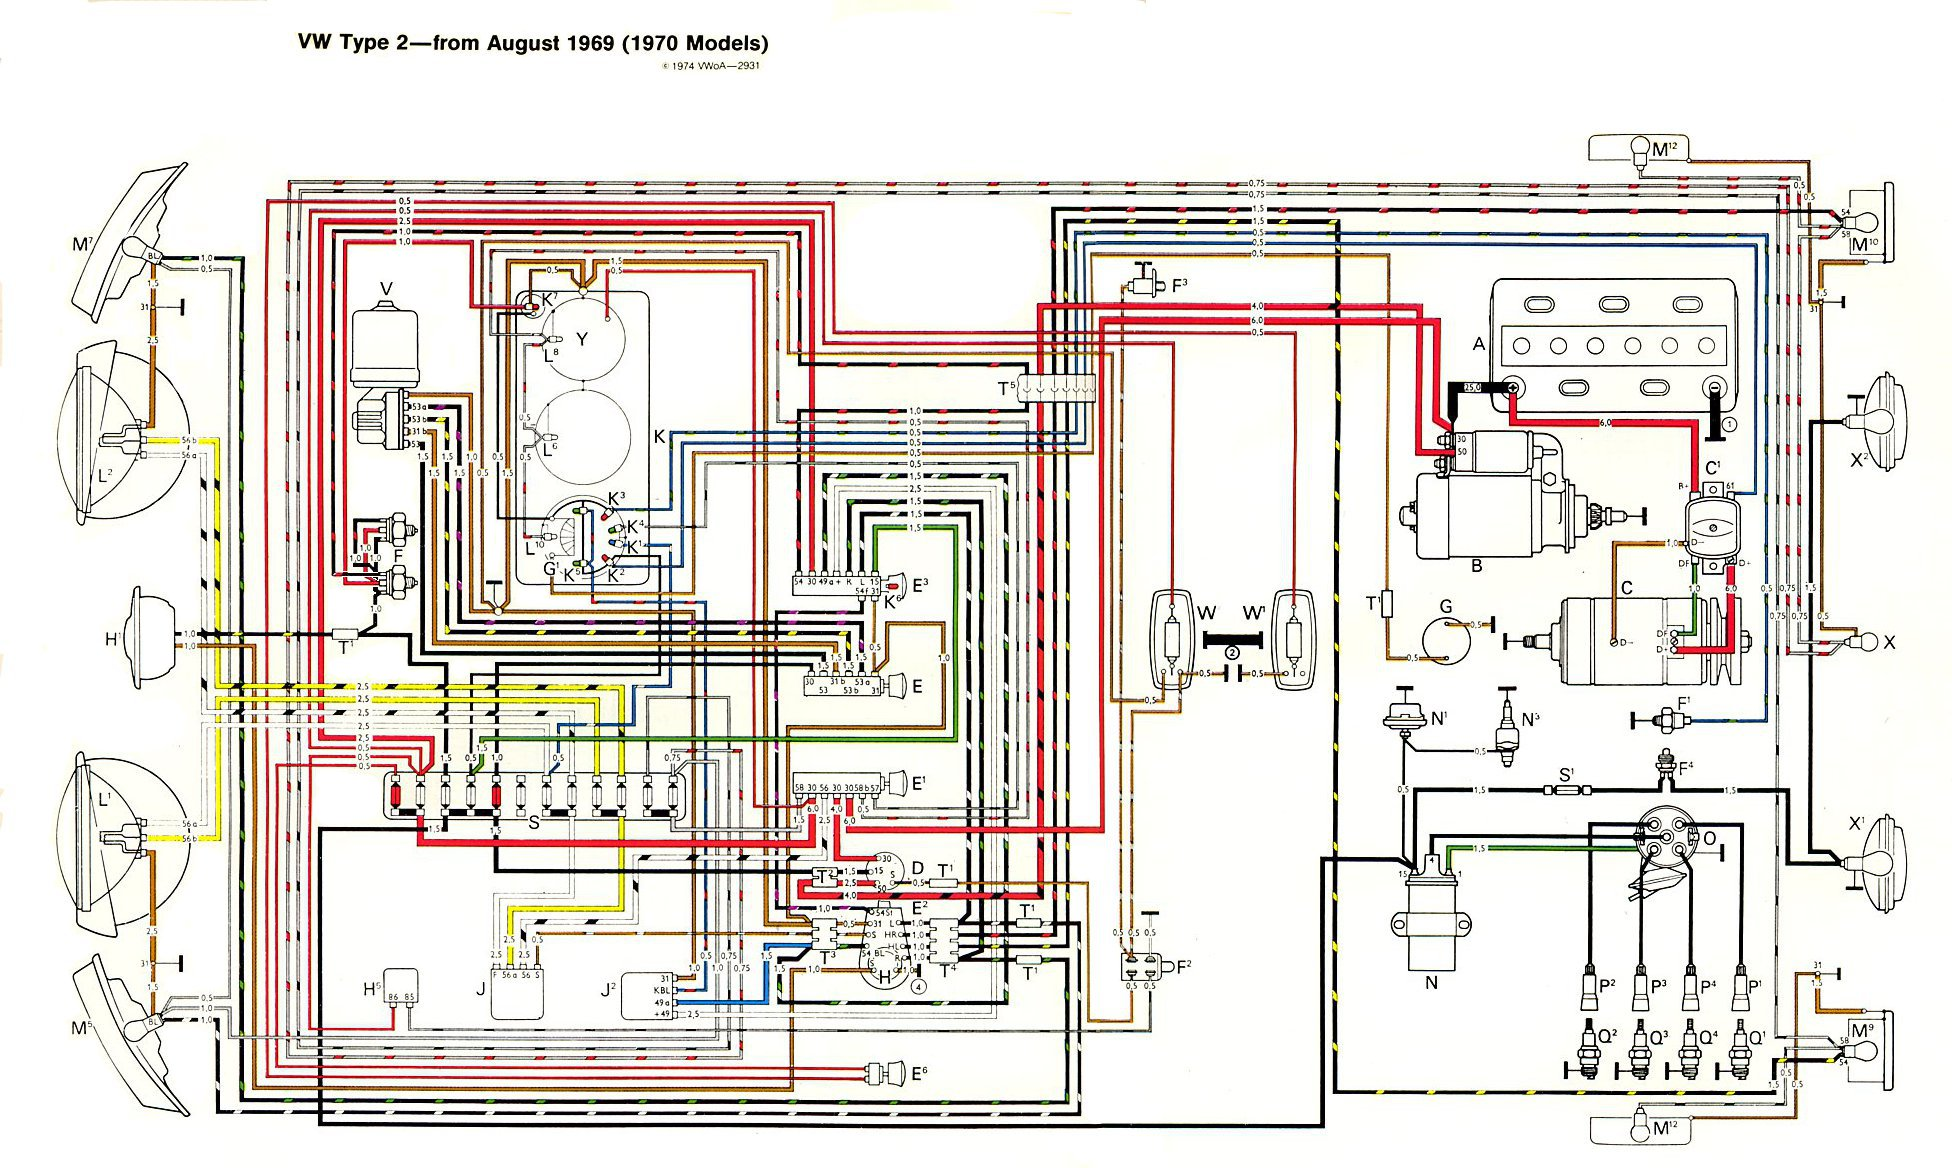 1972 vw bus wiring diagram g l legacy thesamba type 2 diagrams